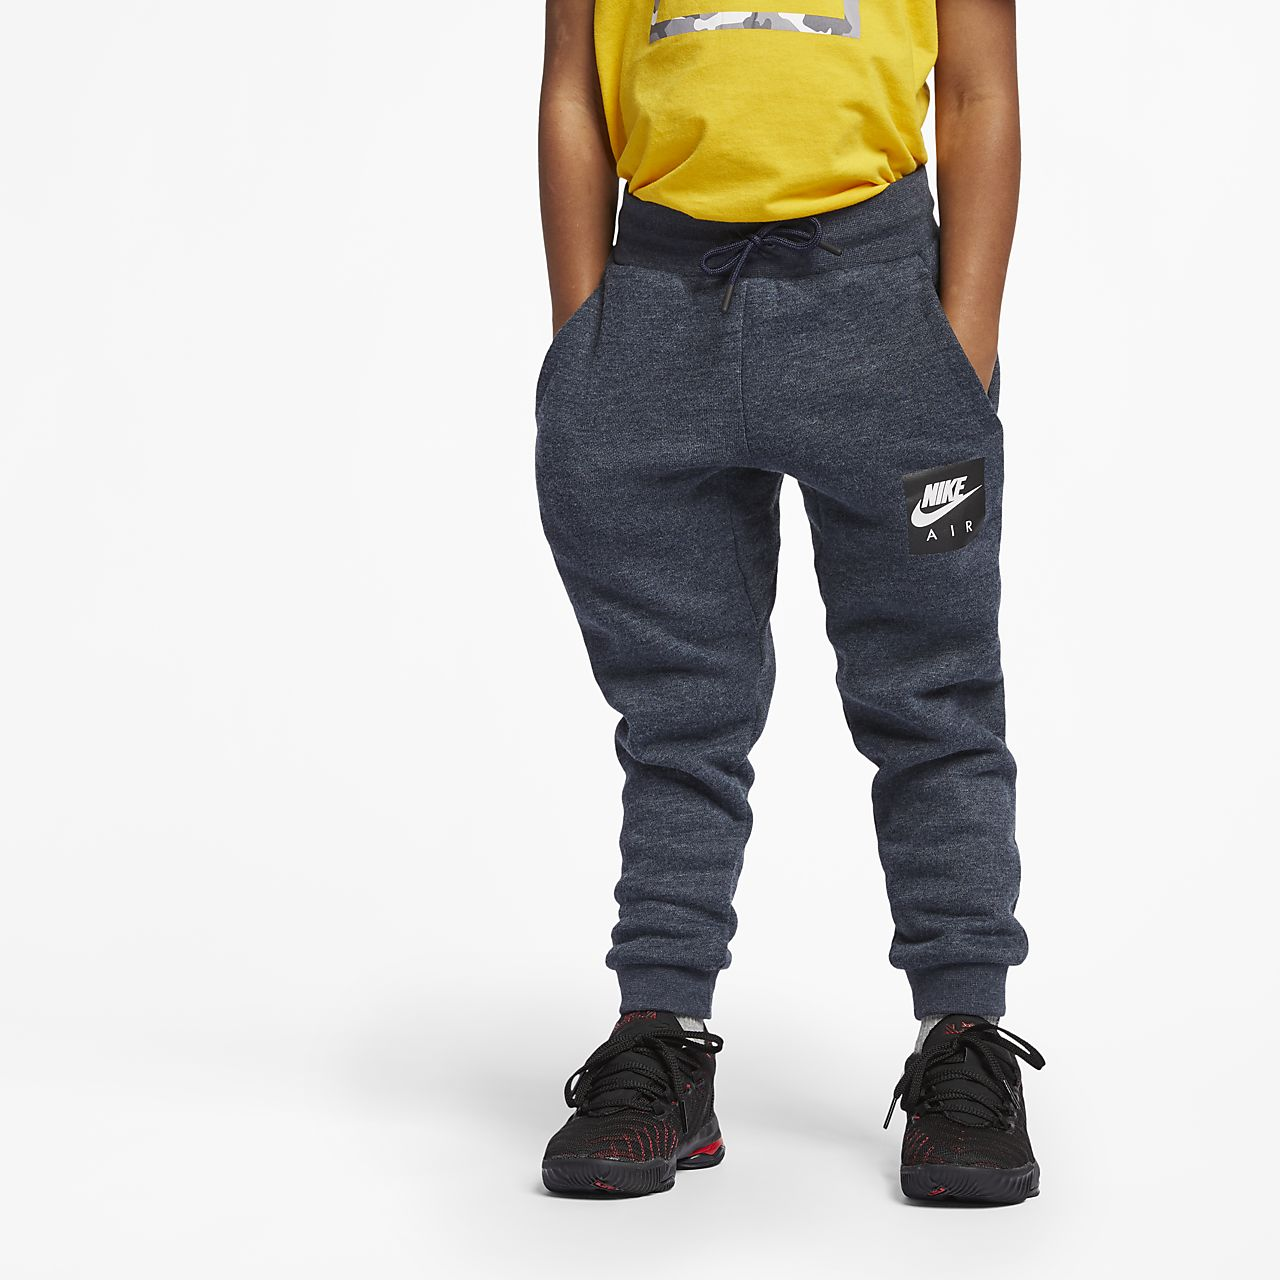 Nike Air Little Kids' Knit Pants